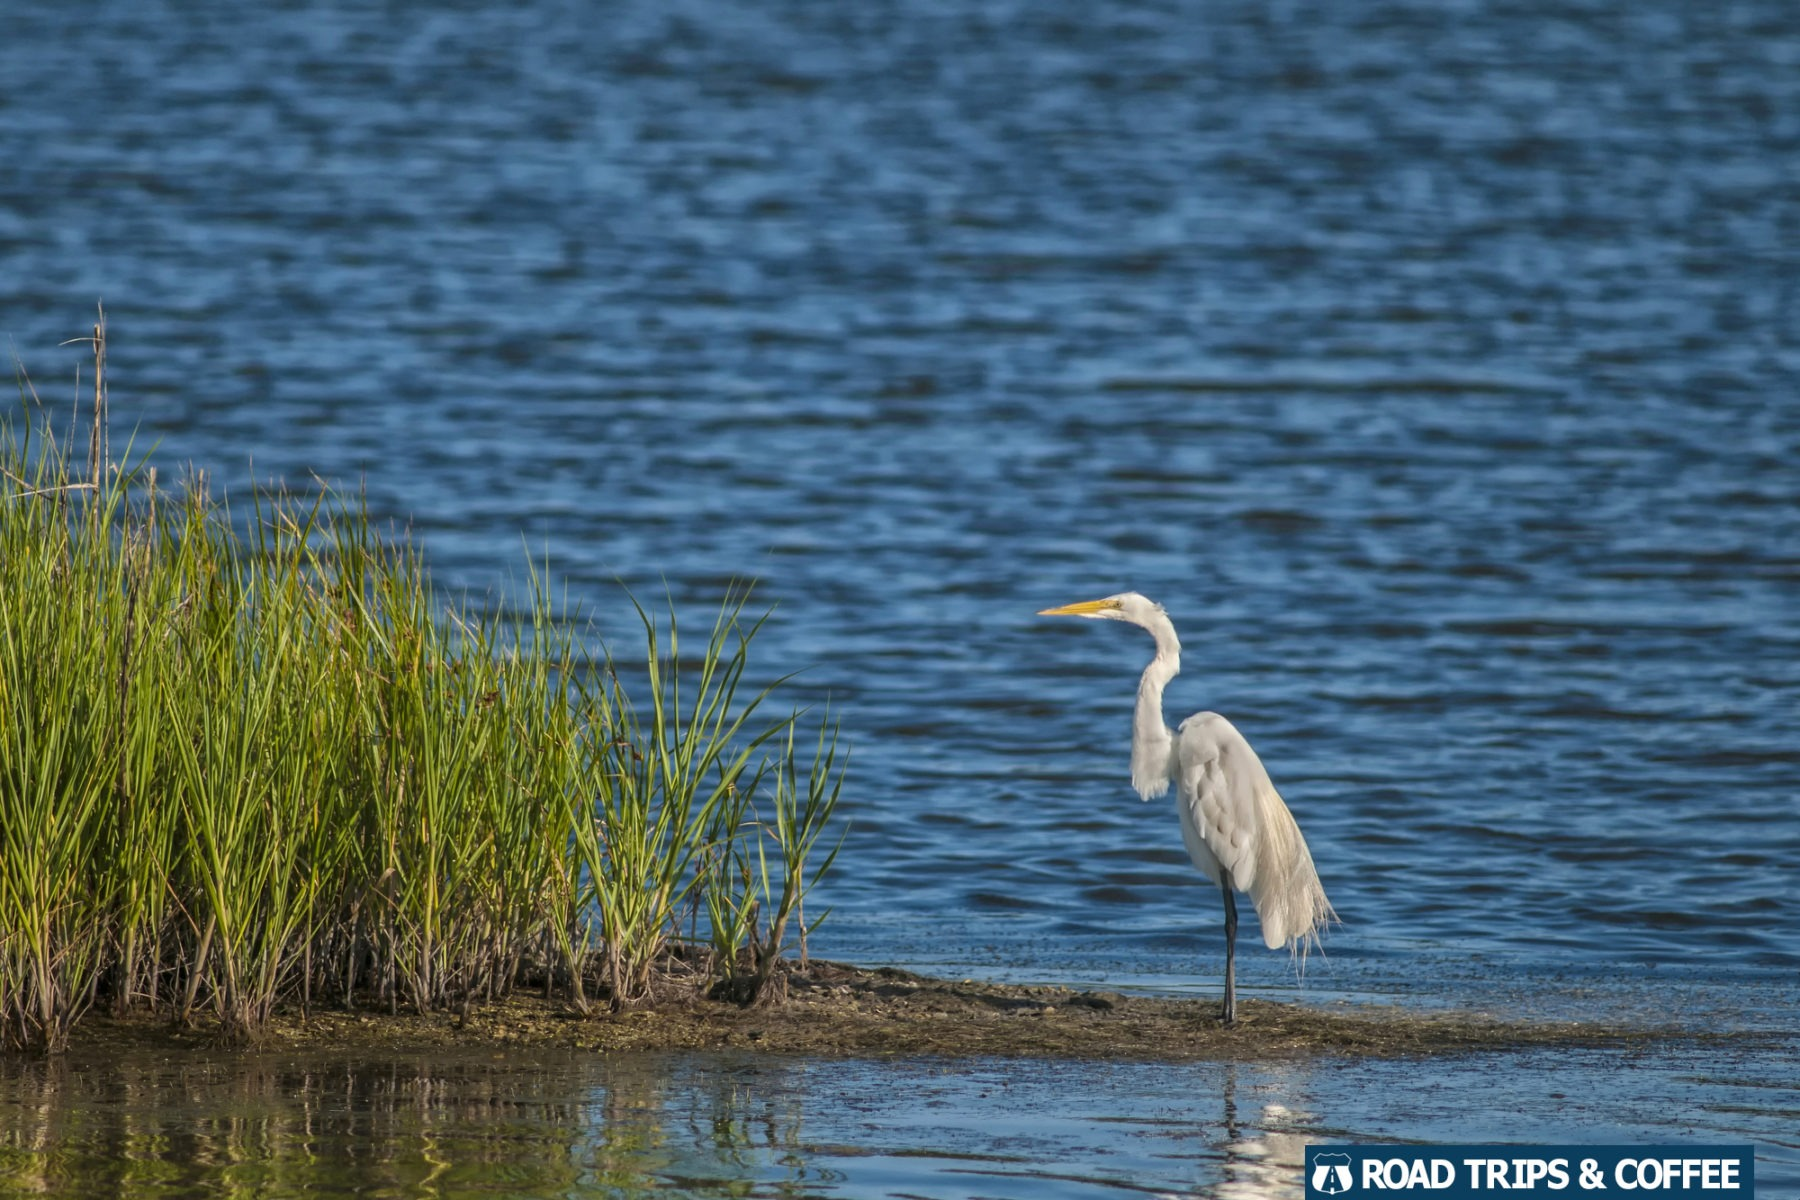 A great egret standing on a small island surrounded by blue water at Huntington Beach State Park in Murrells Inlet, South Carolina